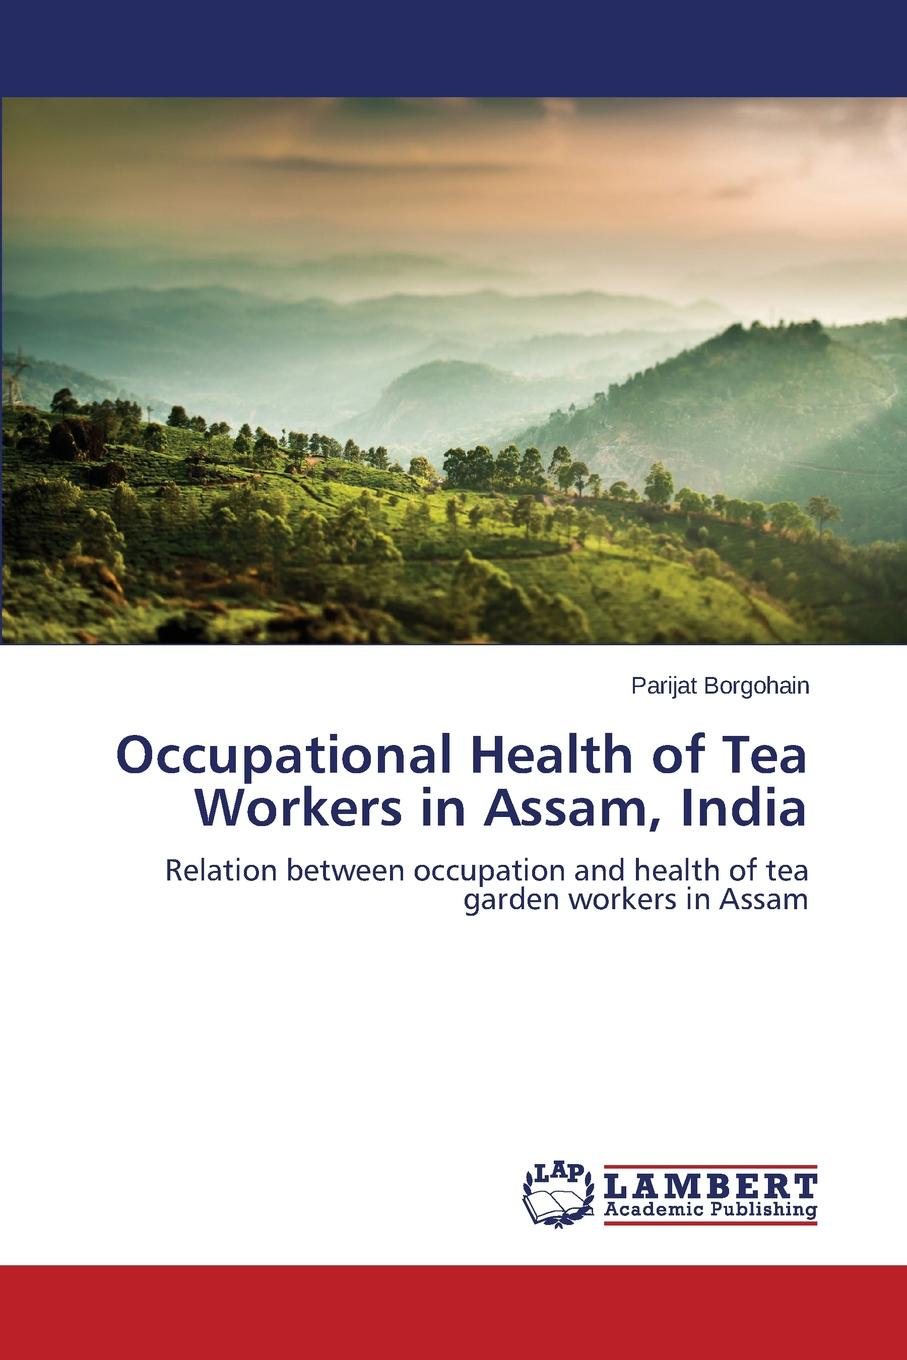 Borgohain Parijat Occupational Health of Tea Workers in Assam, India